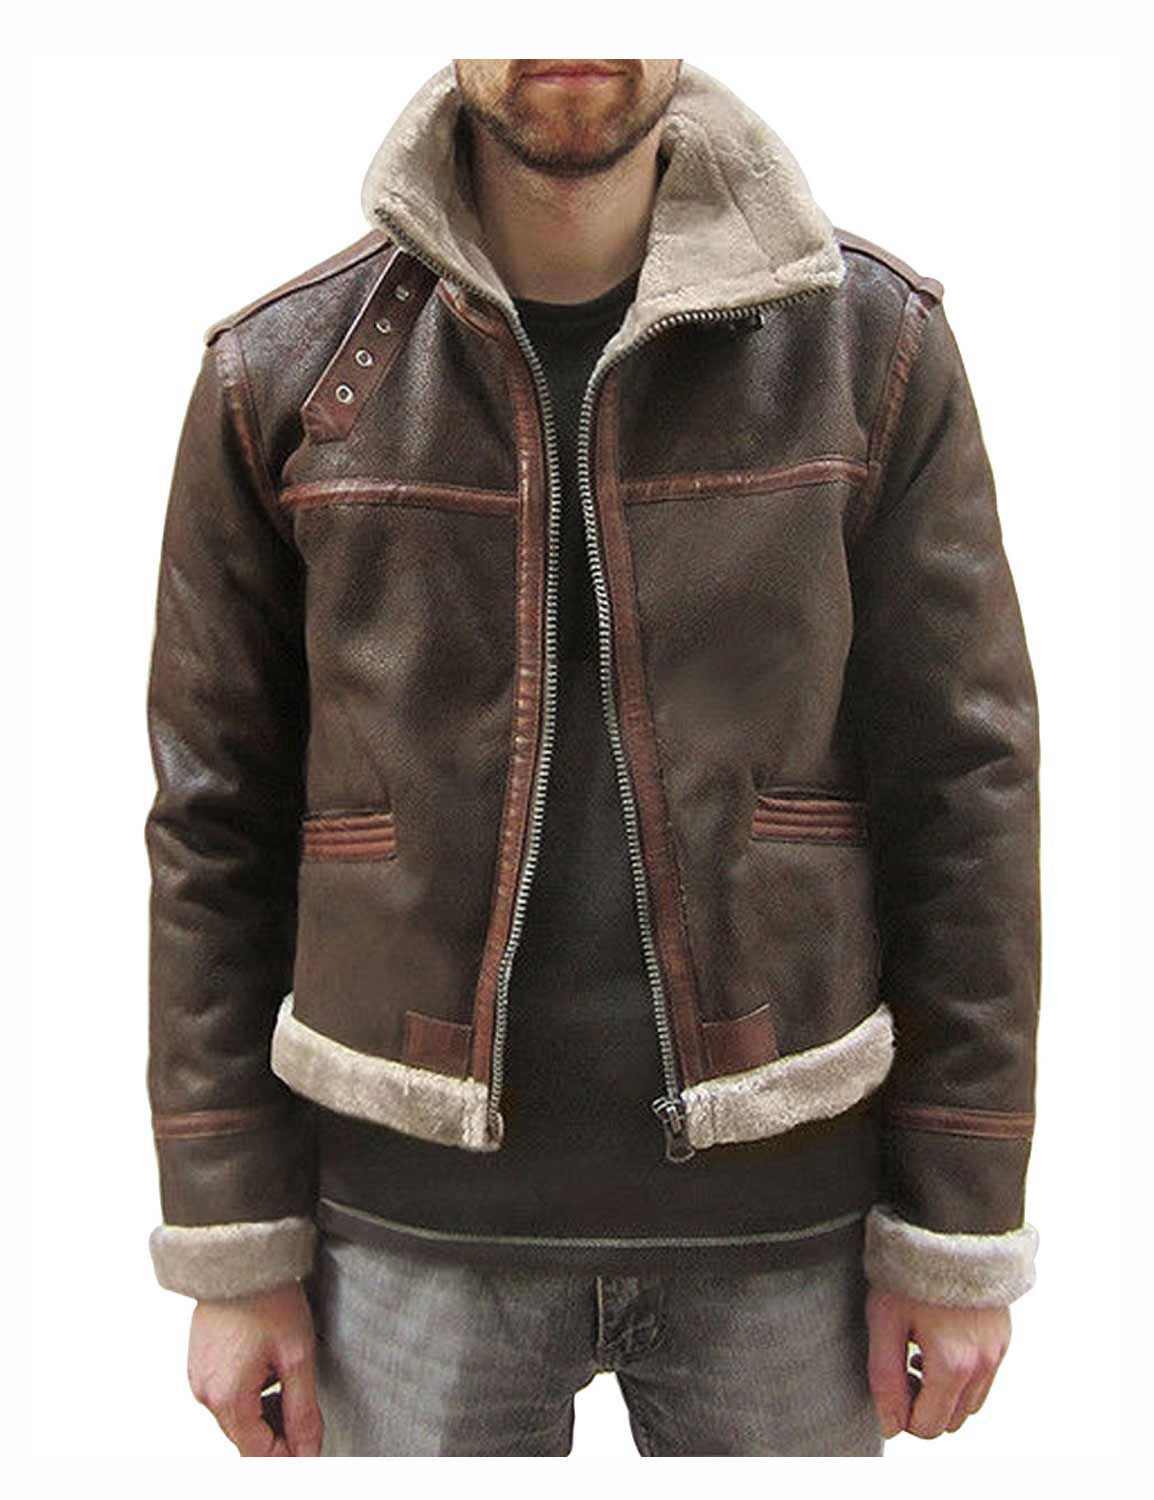 Kennedy JacketVideo Game Resident S Leon Evil Leather yvbf6gIY7